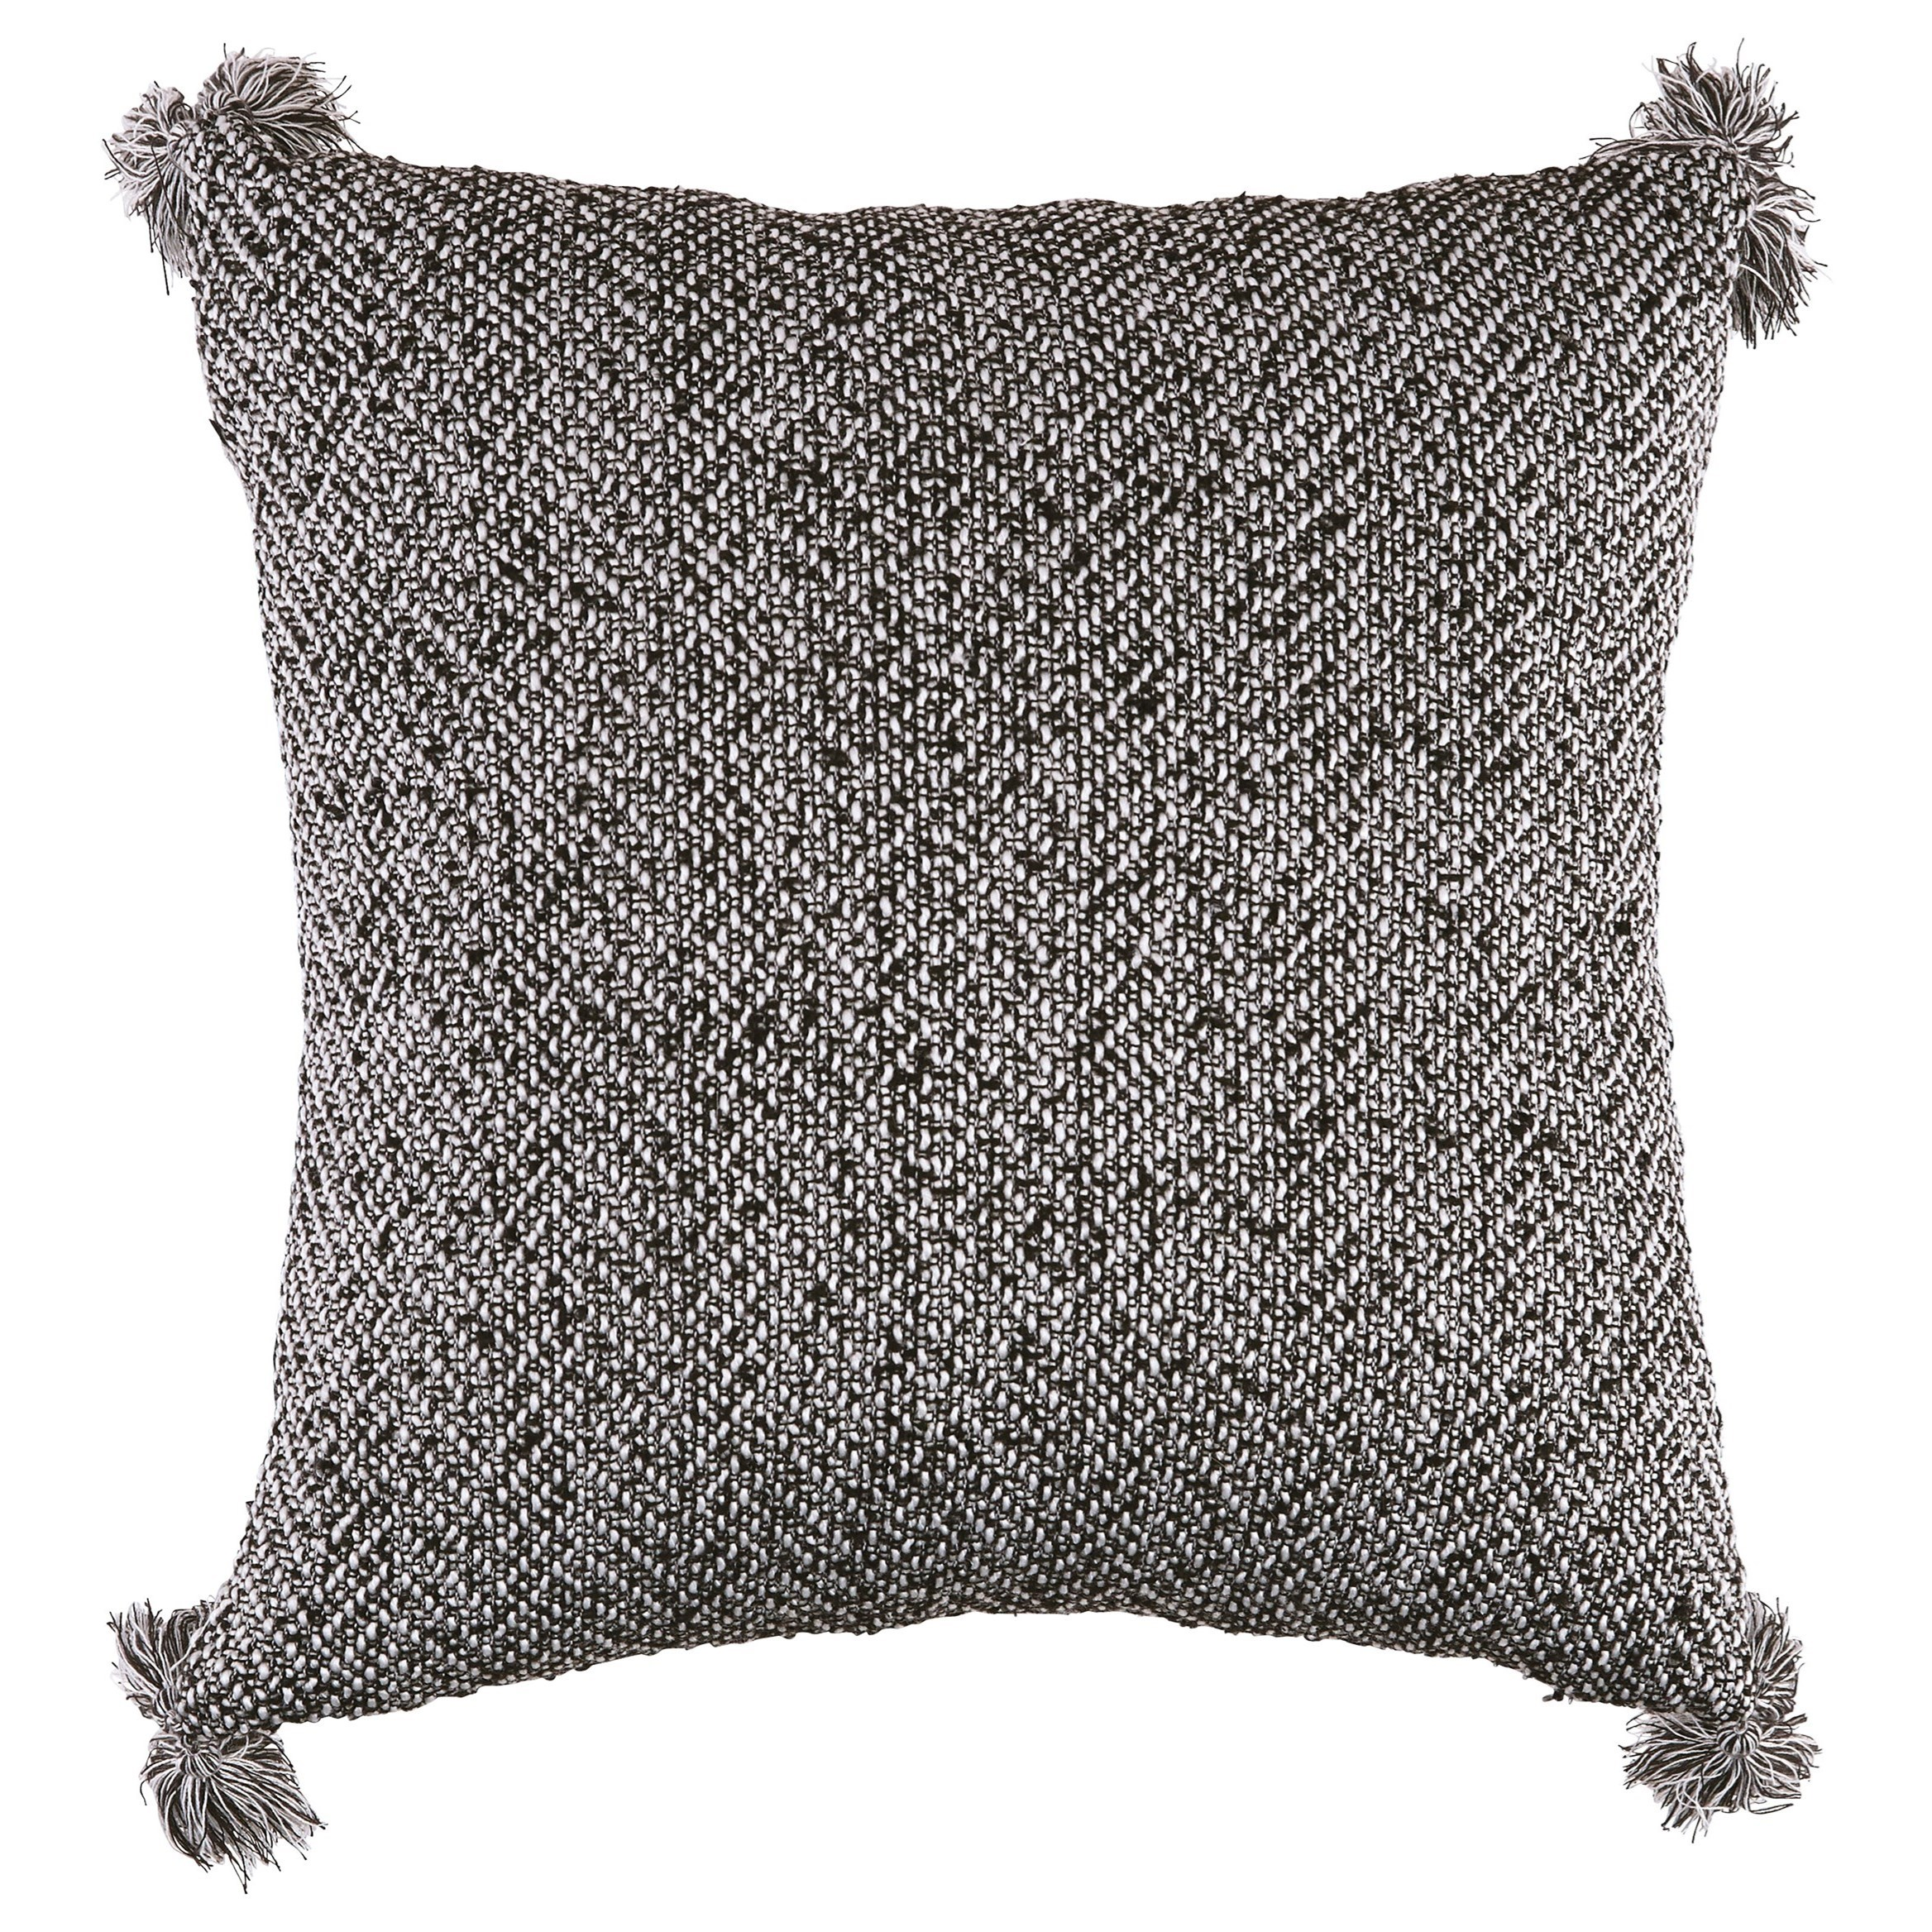 Pillows Riehl Black Pillow by Ashley (Signature Design) at Johnny Janosik